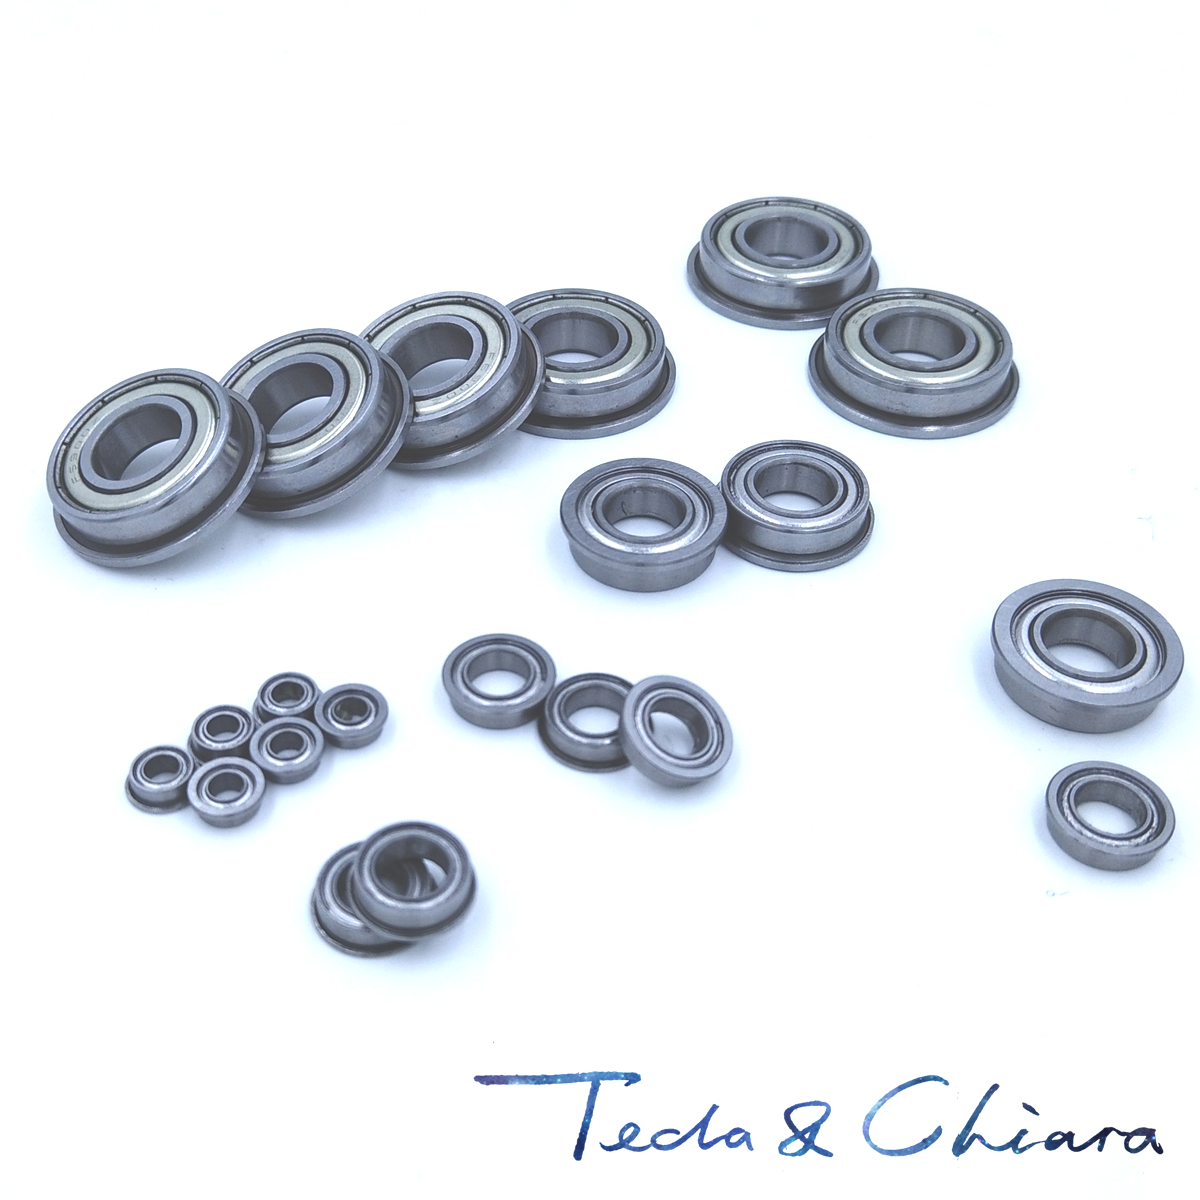 10Pcs 1Lot F688 F688-ZZ F688ZZ F688-2Z F688Z Zz Z 2z F628/8ZZ Flanged Flange Deep Groove Ball Bearings 8 X 16 X 5mm